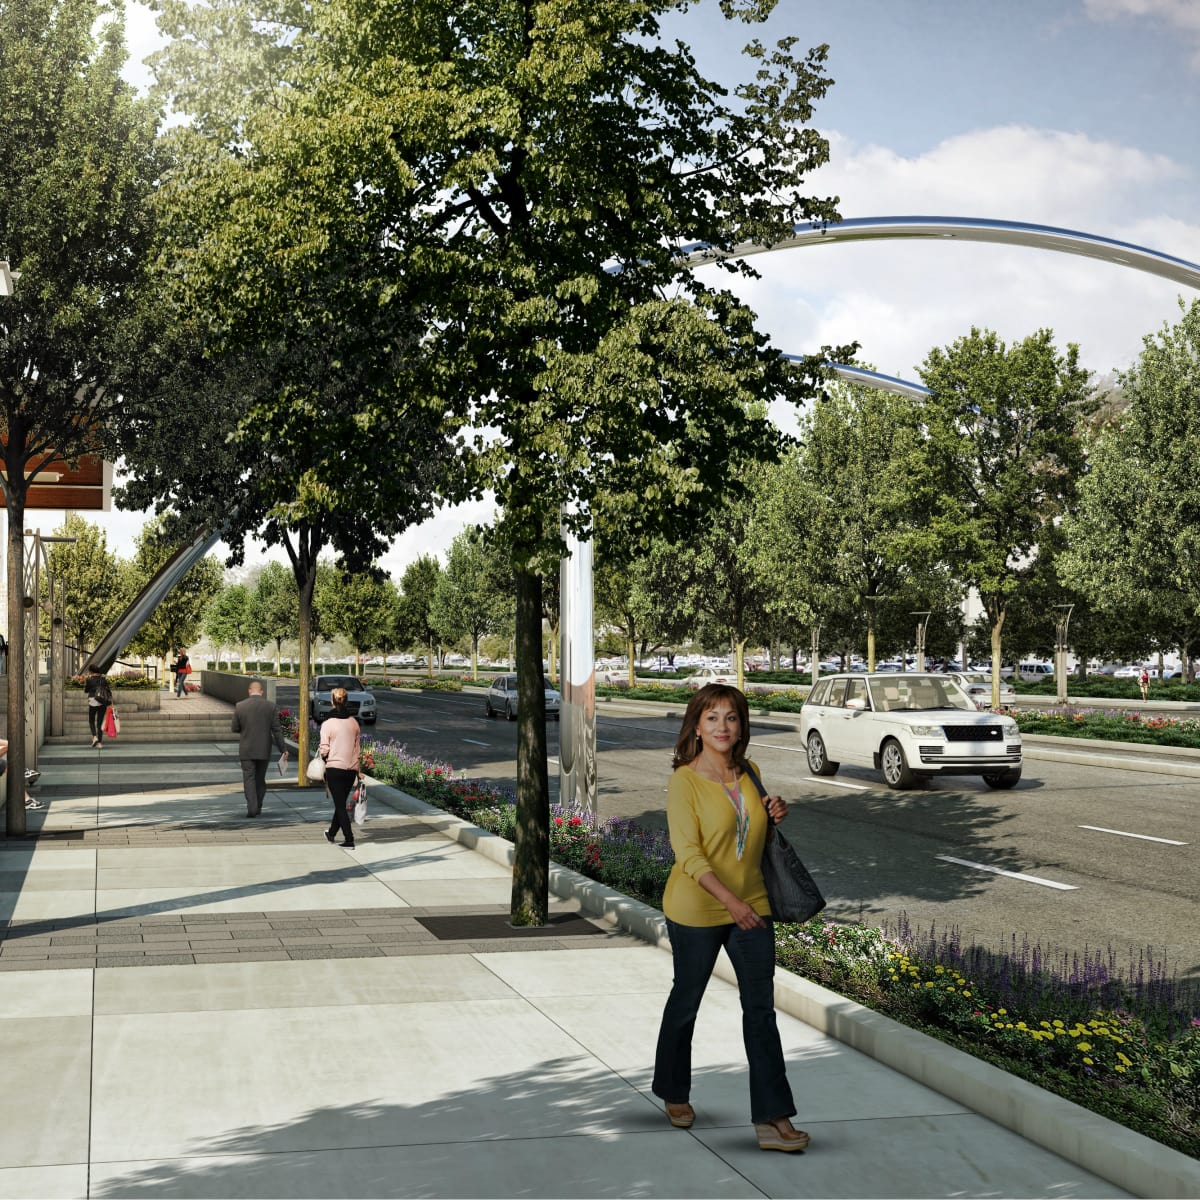 The Boulevard Project